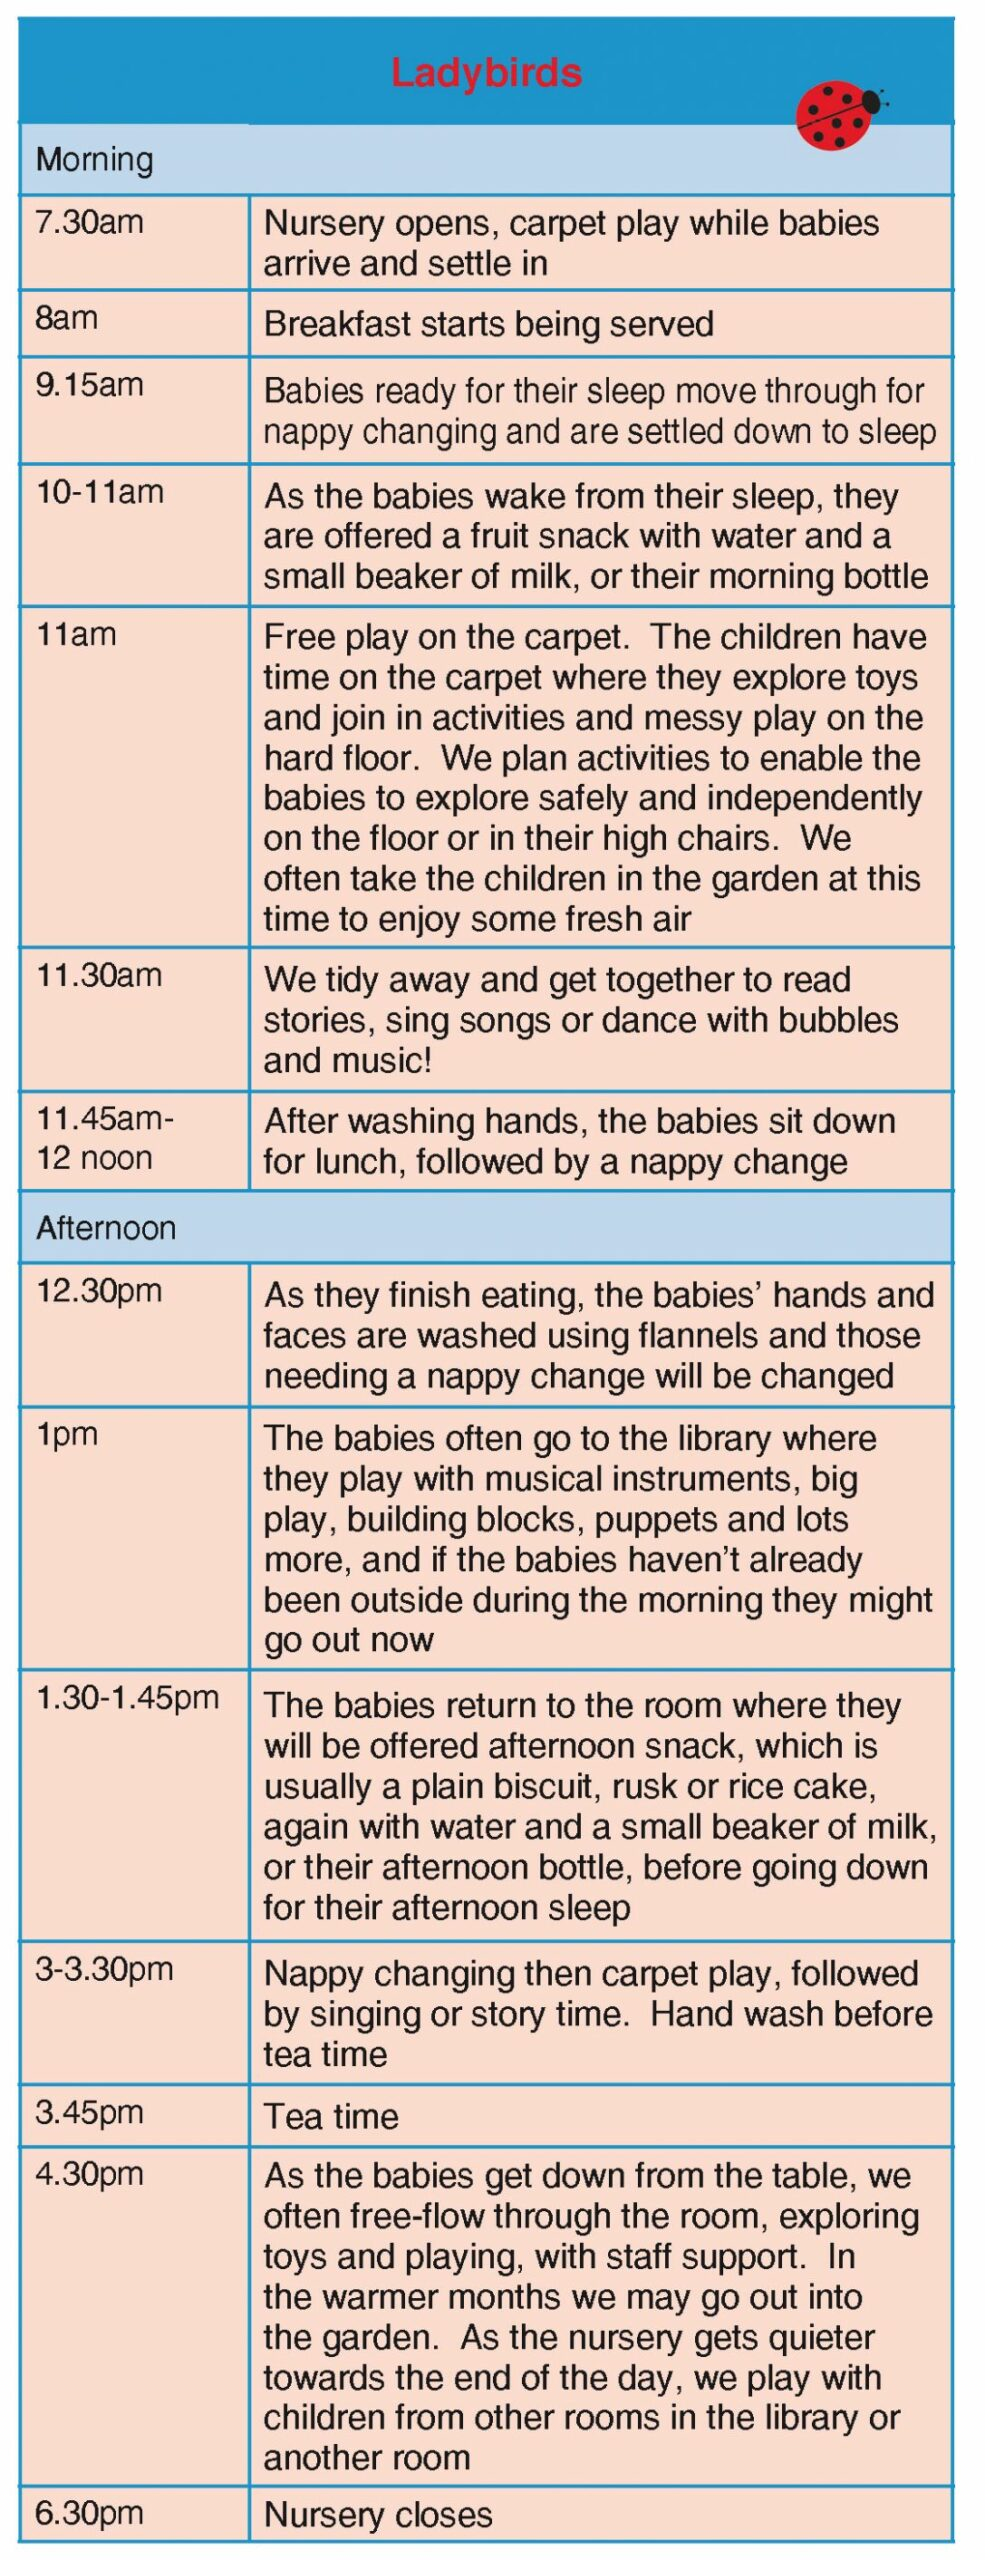 Ladybirds Daily Routine - Bumpkins Day Nursery - baby room routine